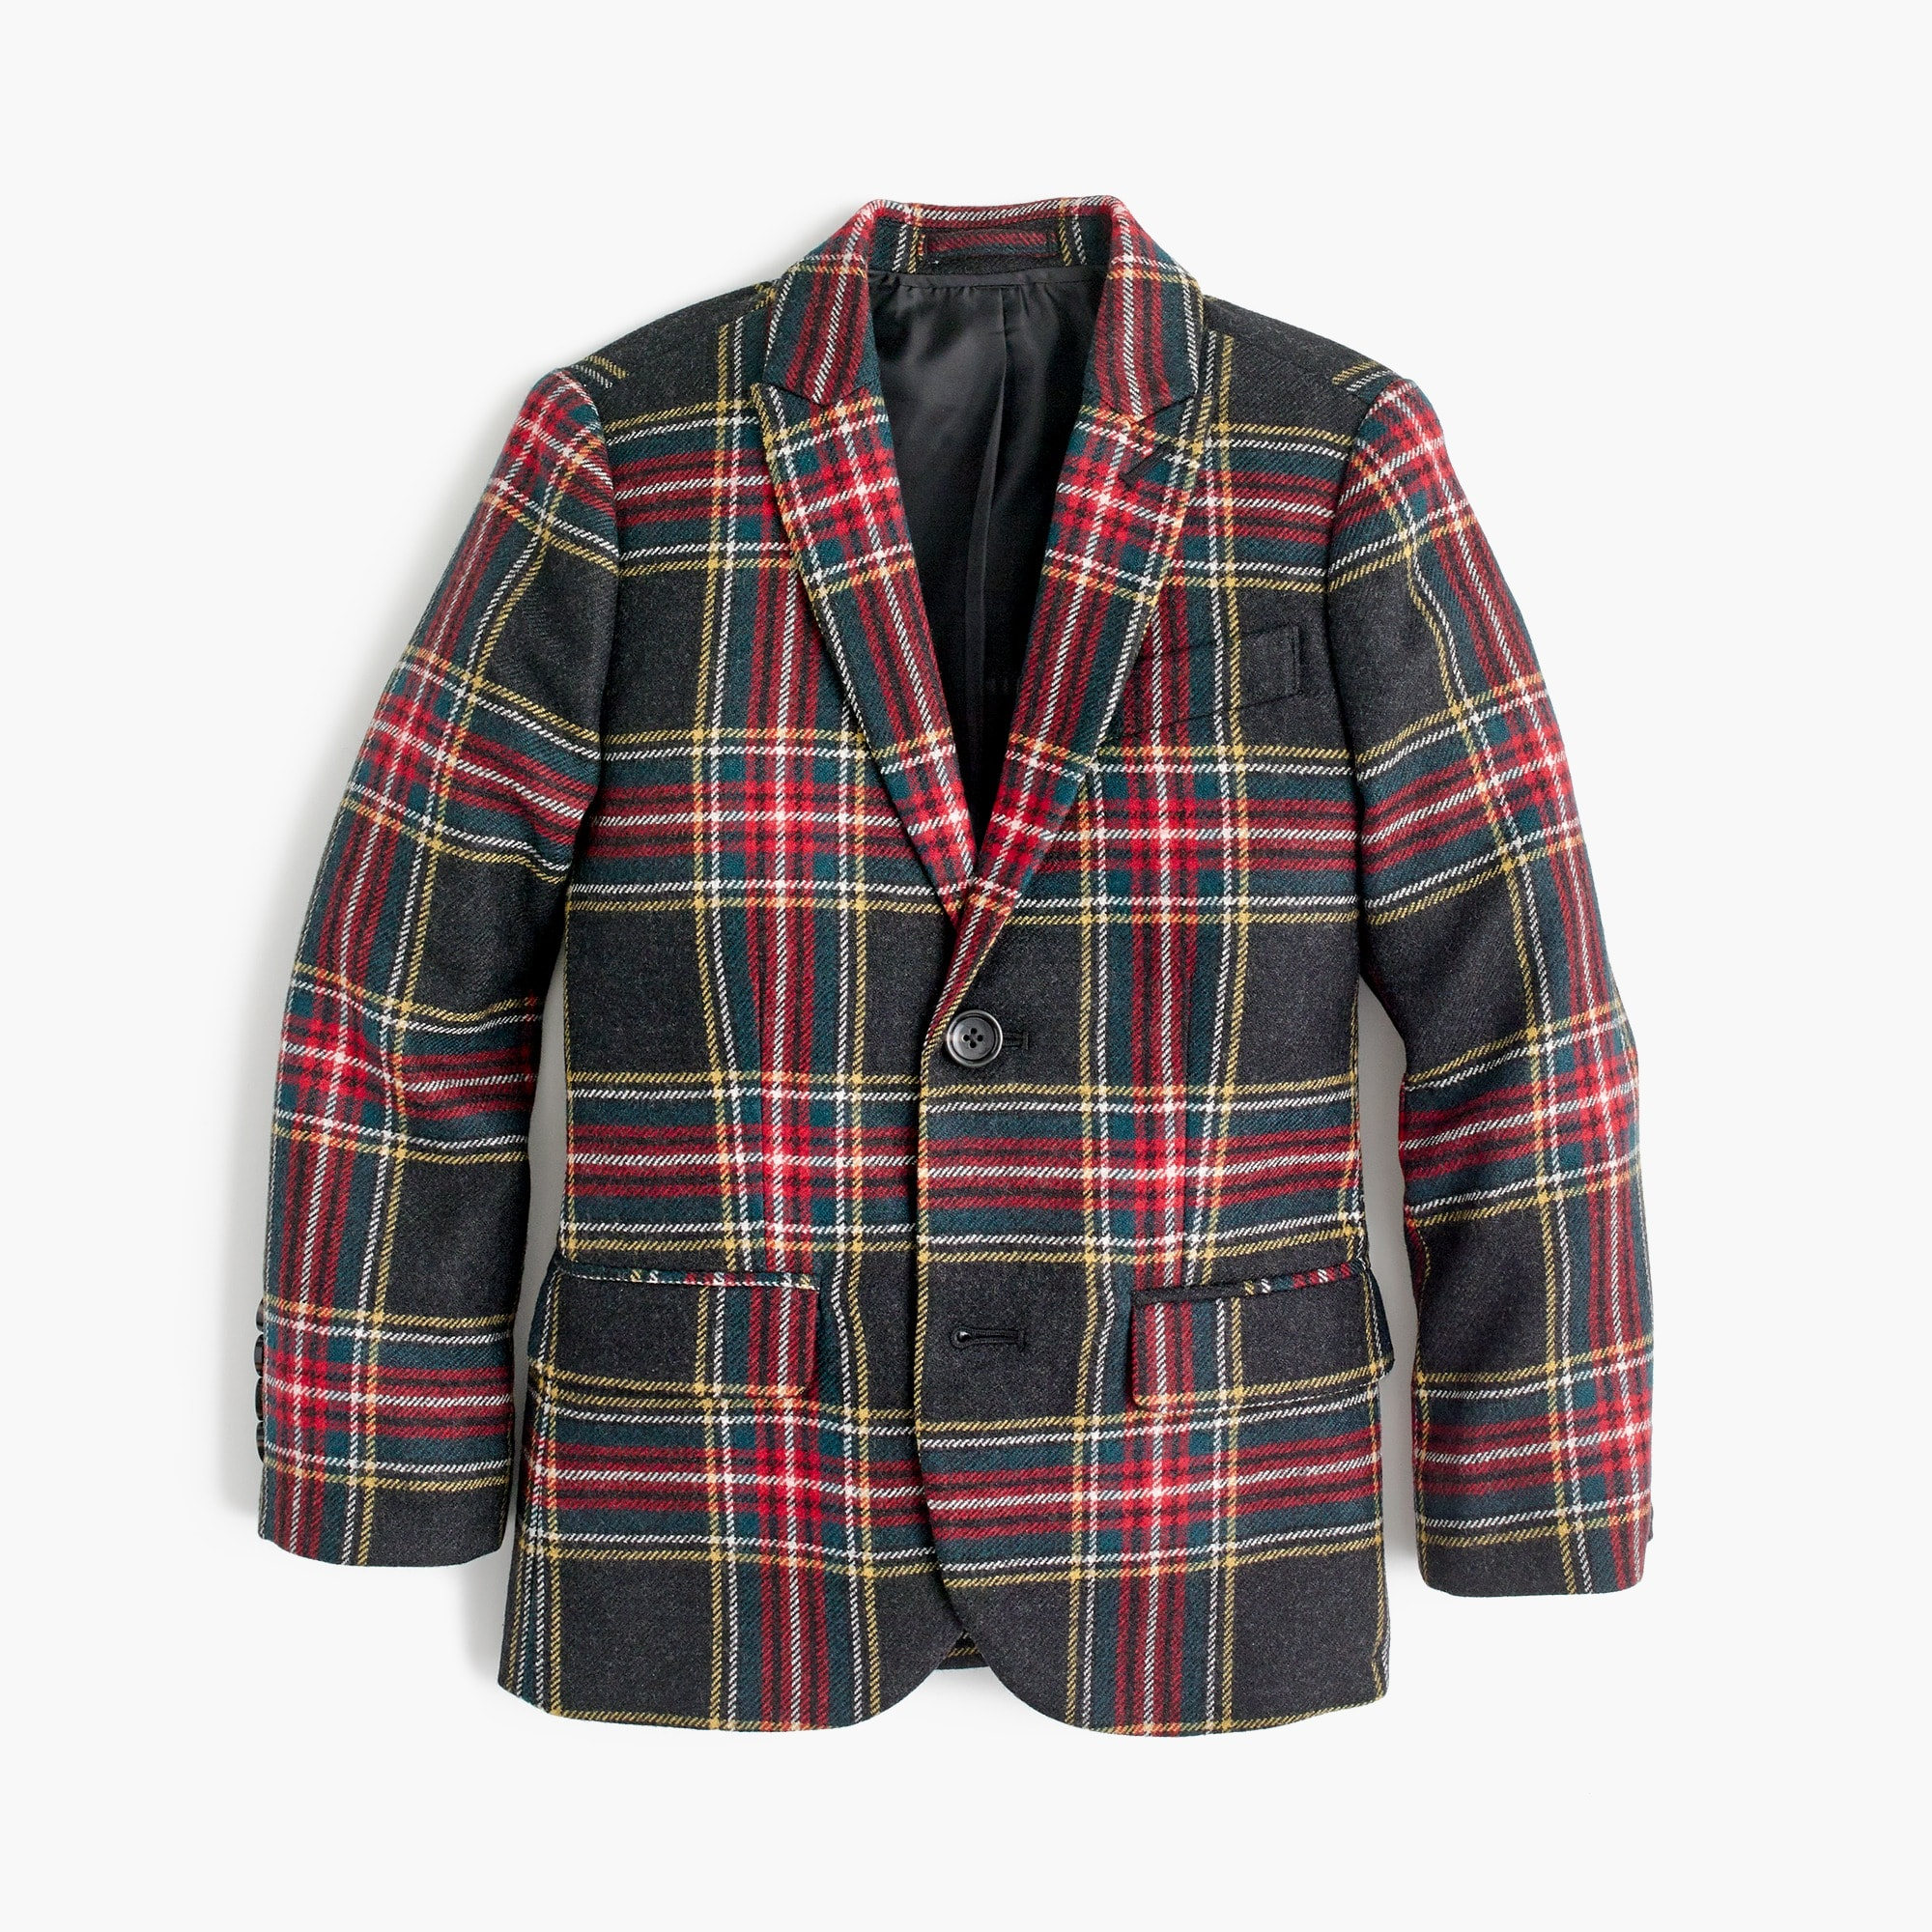 Image 1 for Boys' Ludlow suit jacket in Stewart plaid